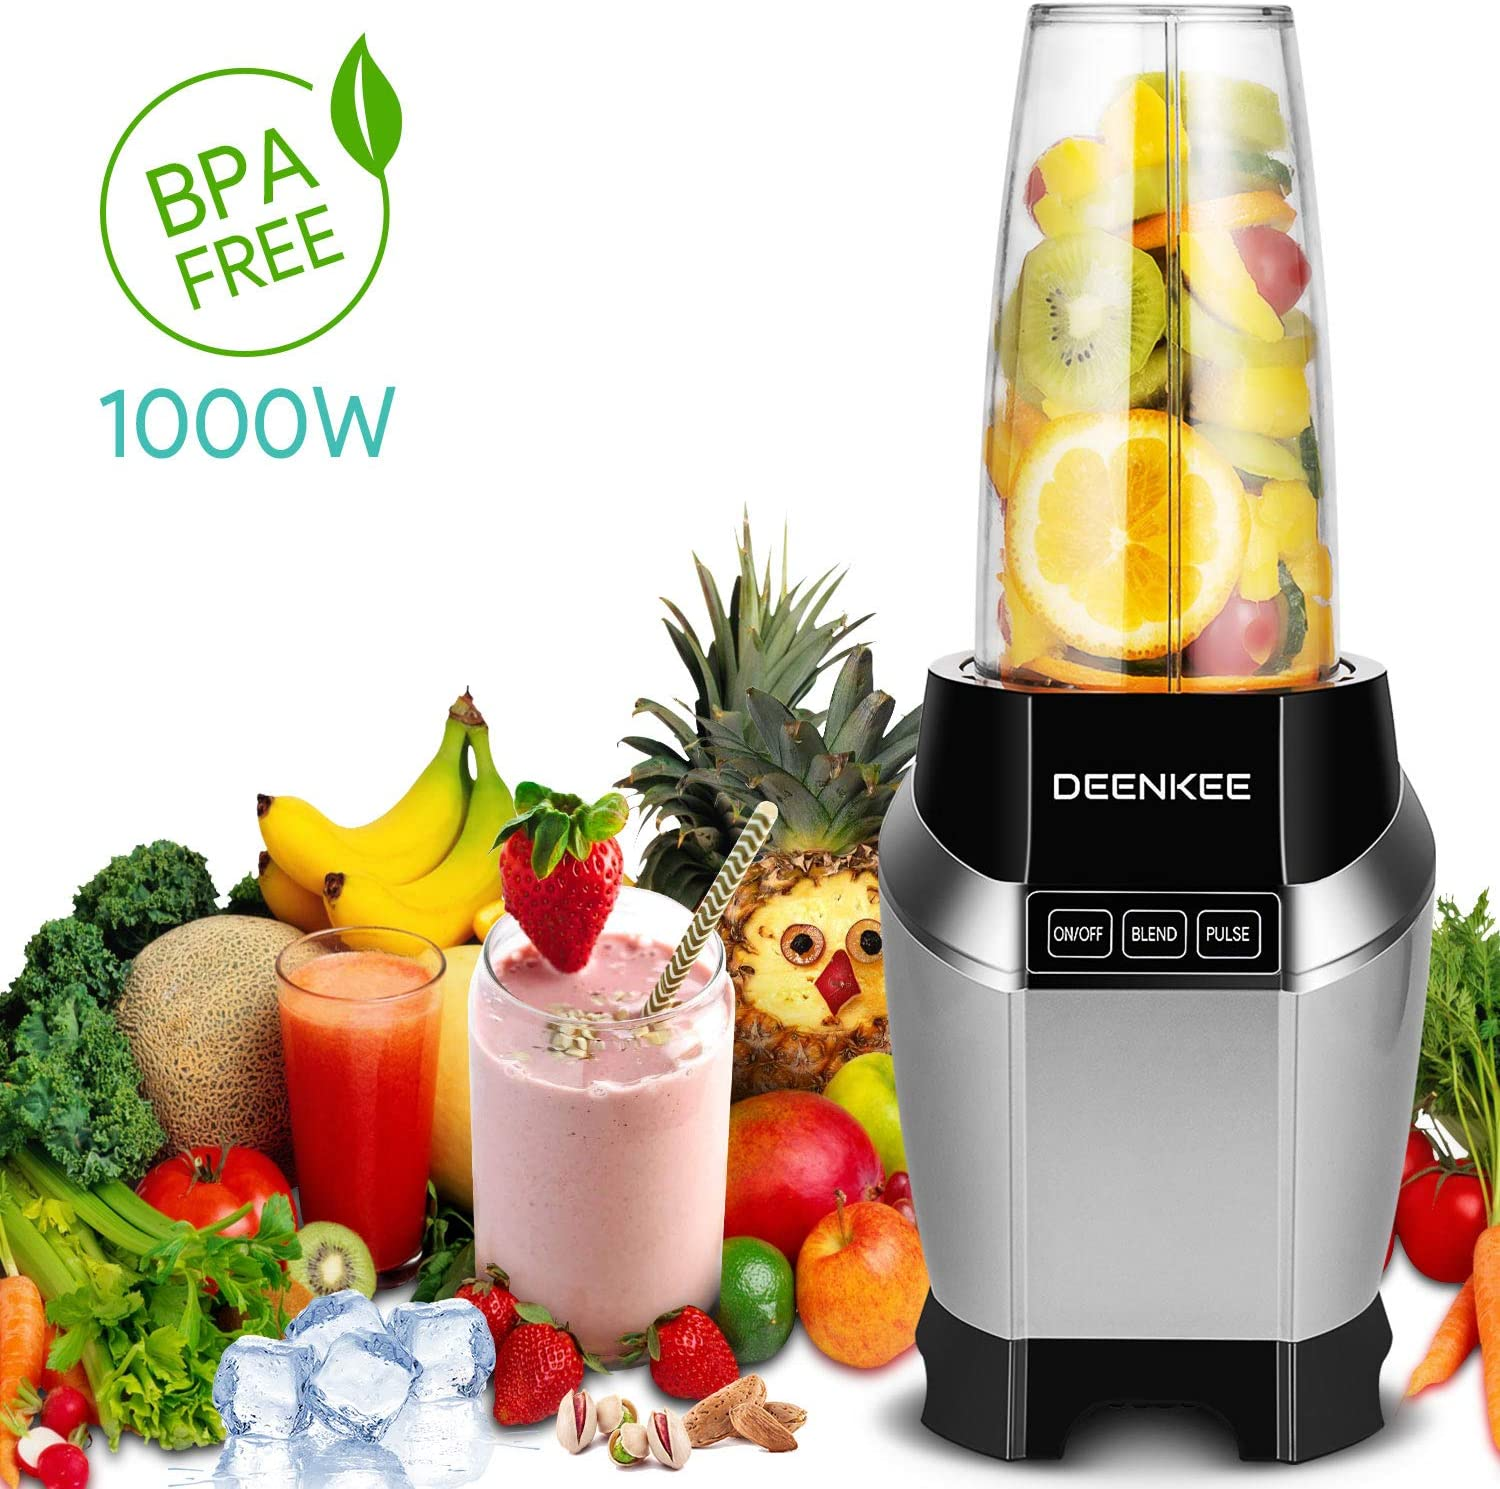 Smoothie Blender, Personal Blender, Blender For Shakes And Smoothies, Stainless Steel Juicer Blender Electric, Professional-Grade Power,High-Speed Blender For Baby Food With 1000W, BPA Free,FDA, Recipes Including sliver